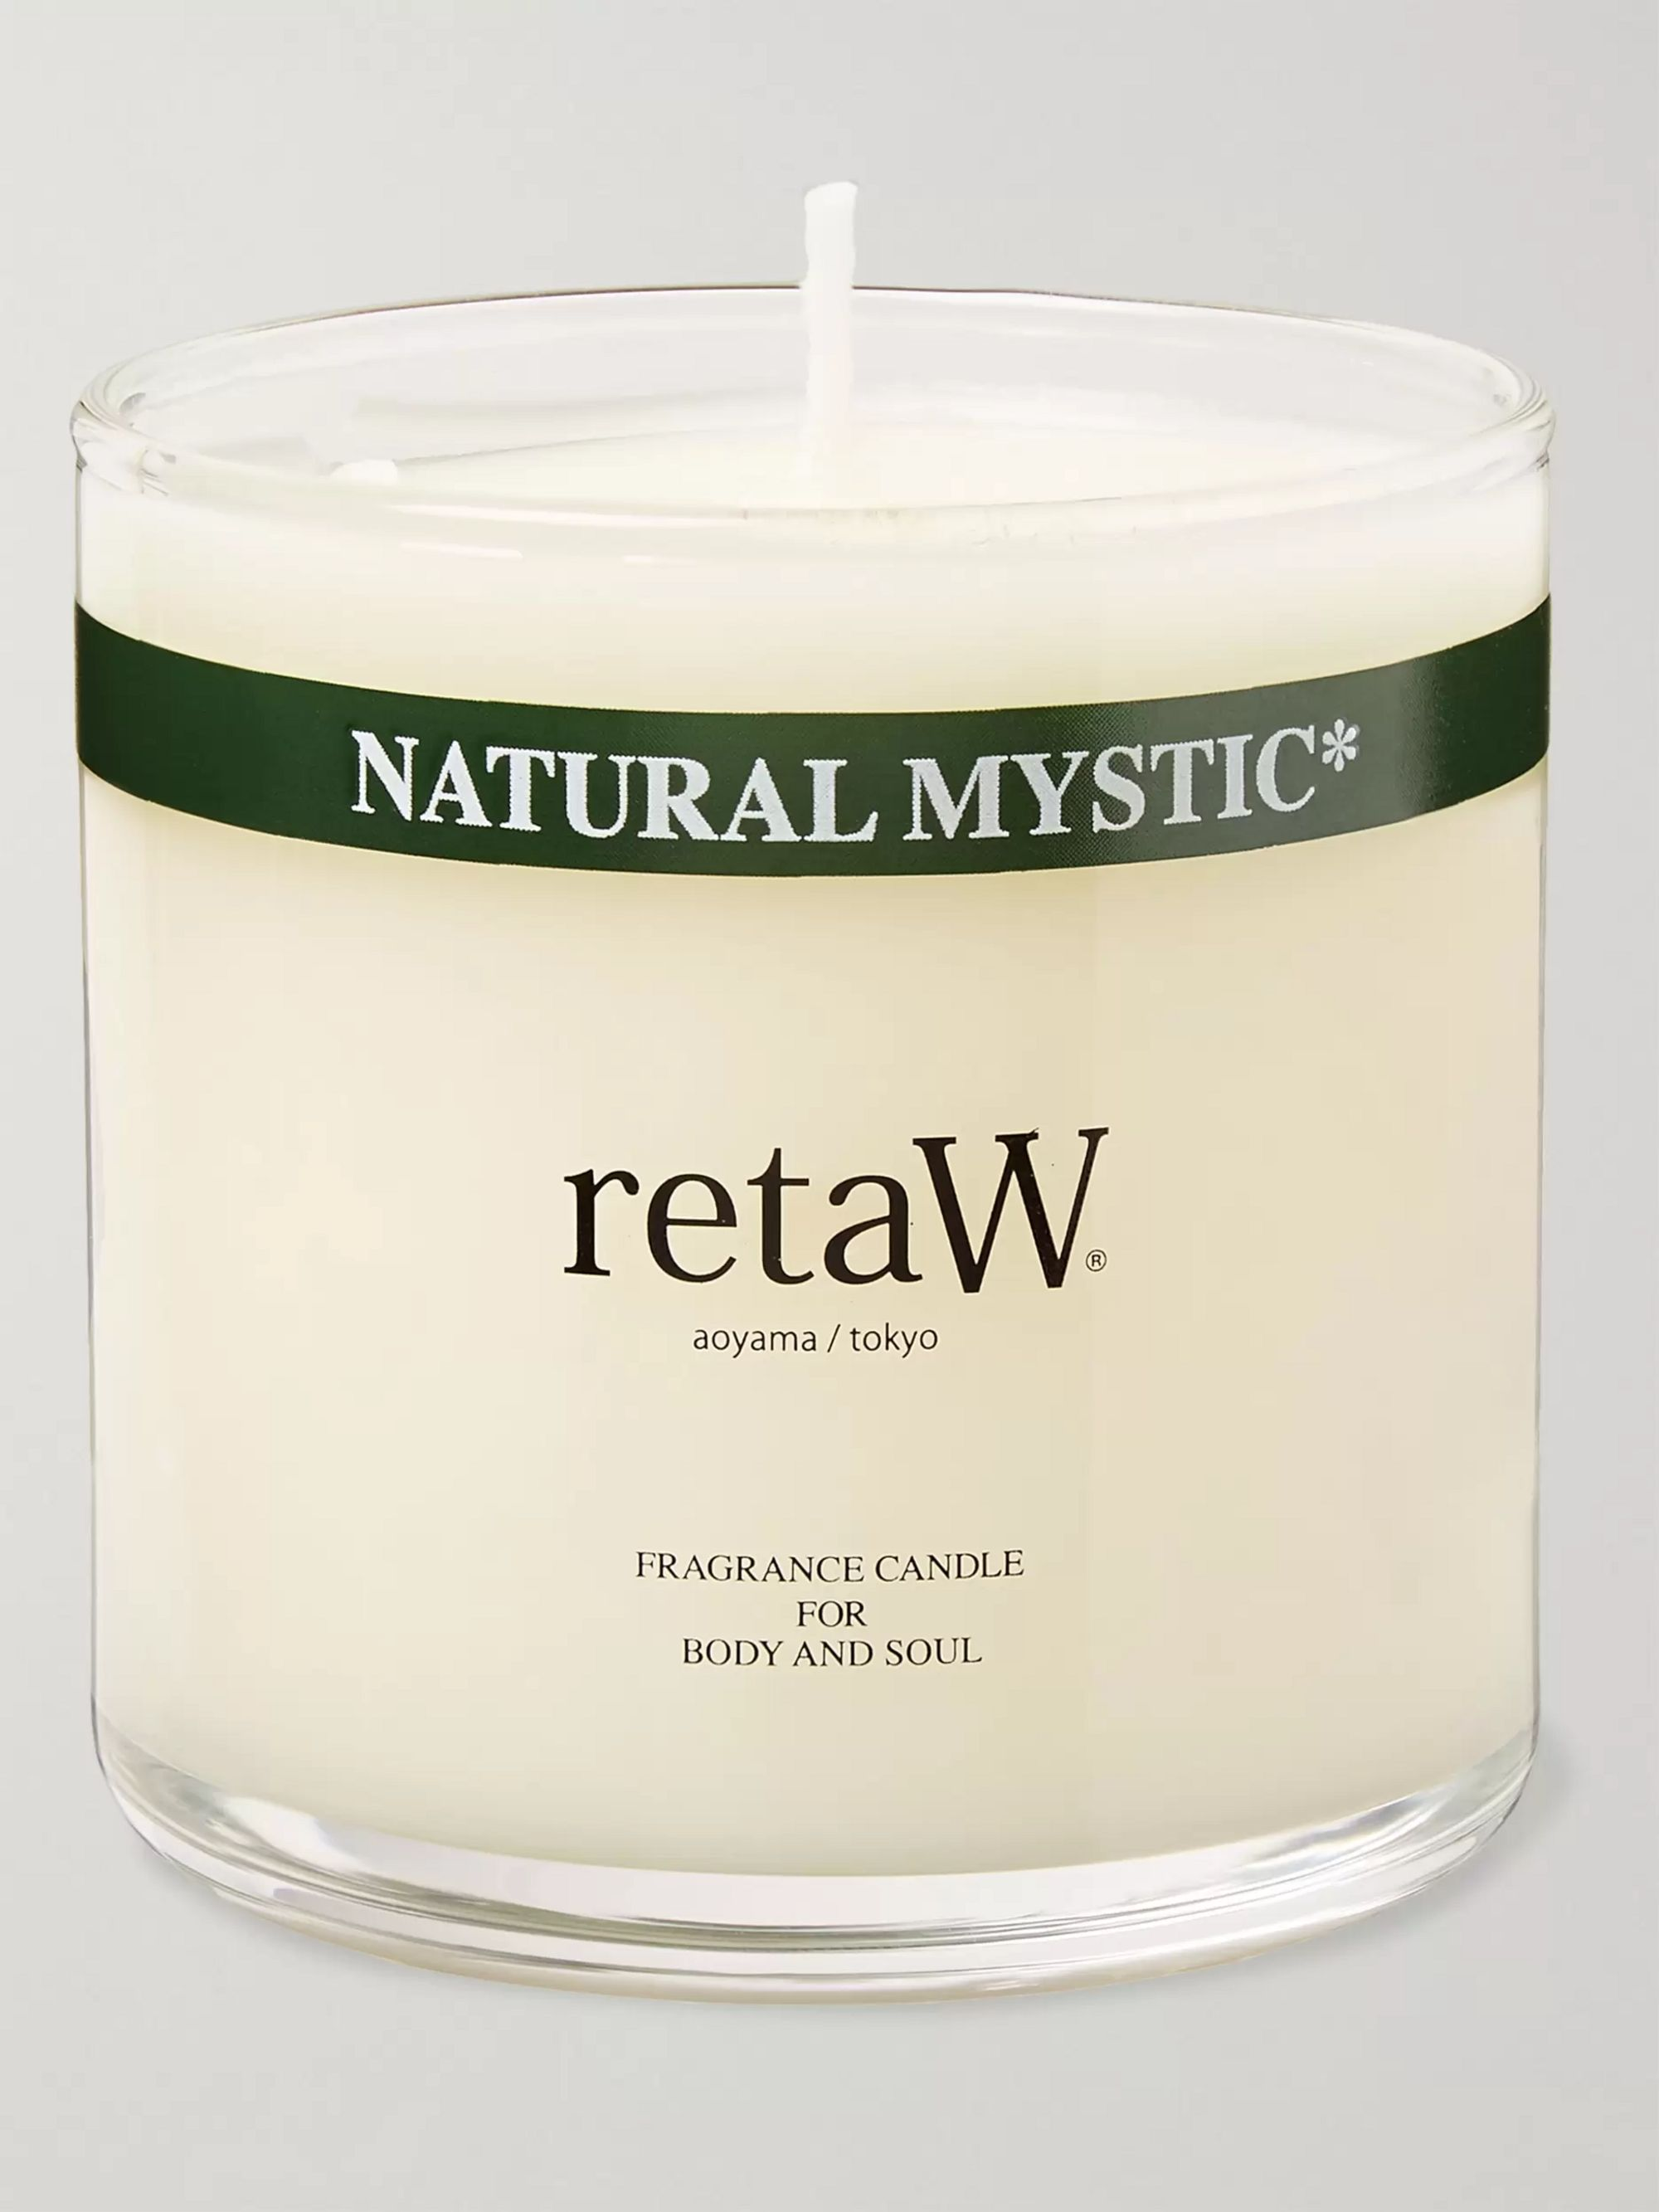 retaW Natural Mystic Scented Candle, 145g